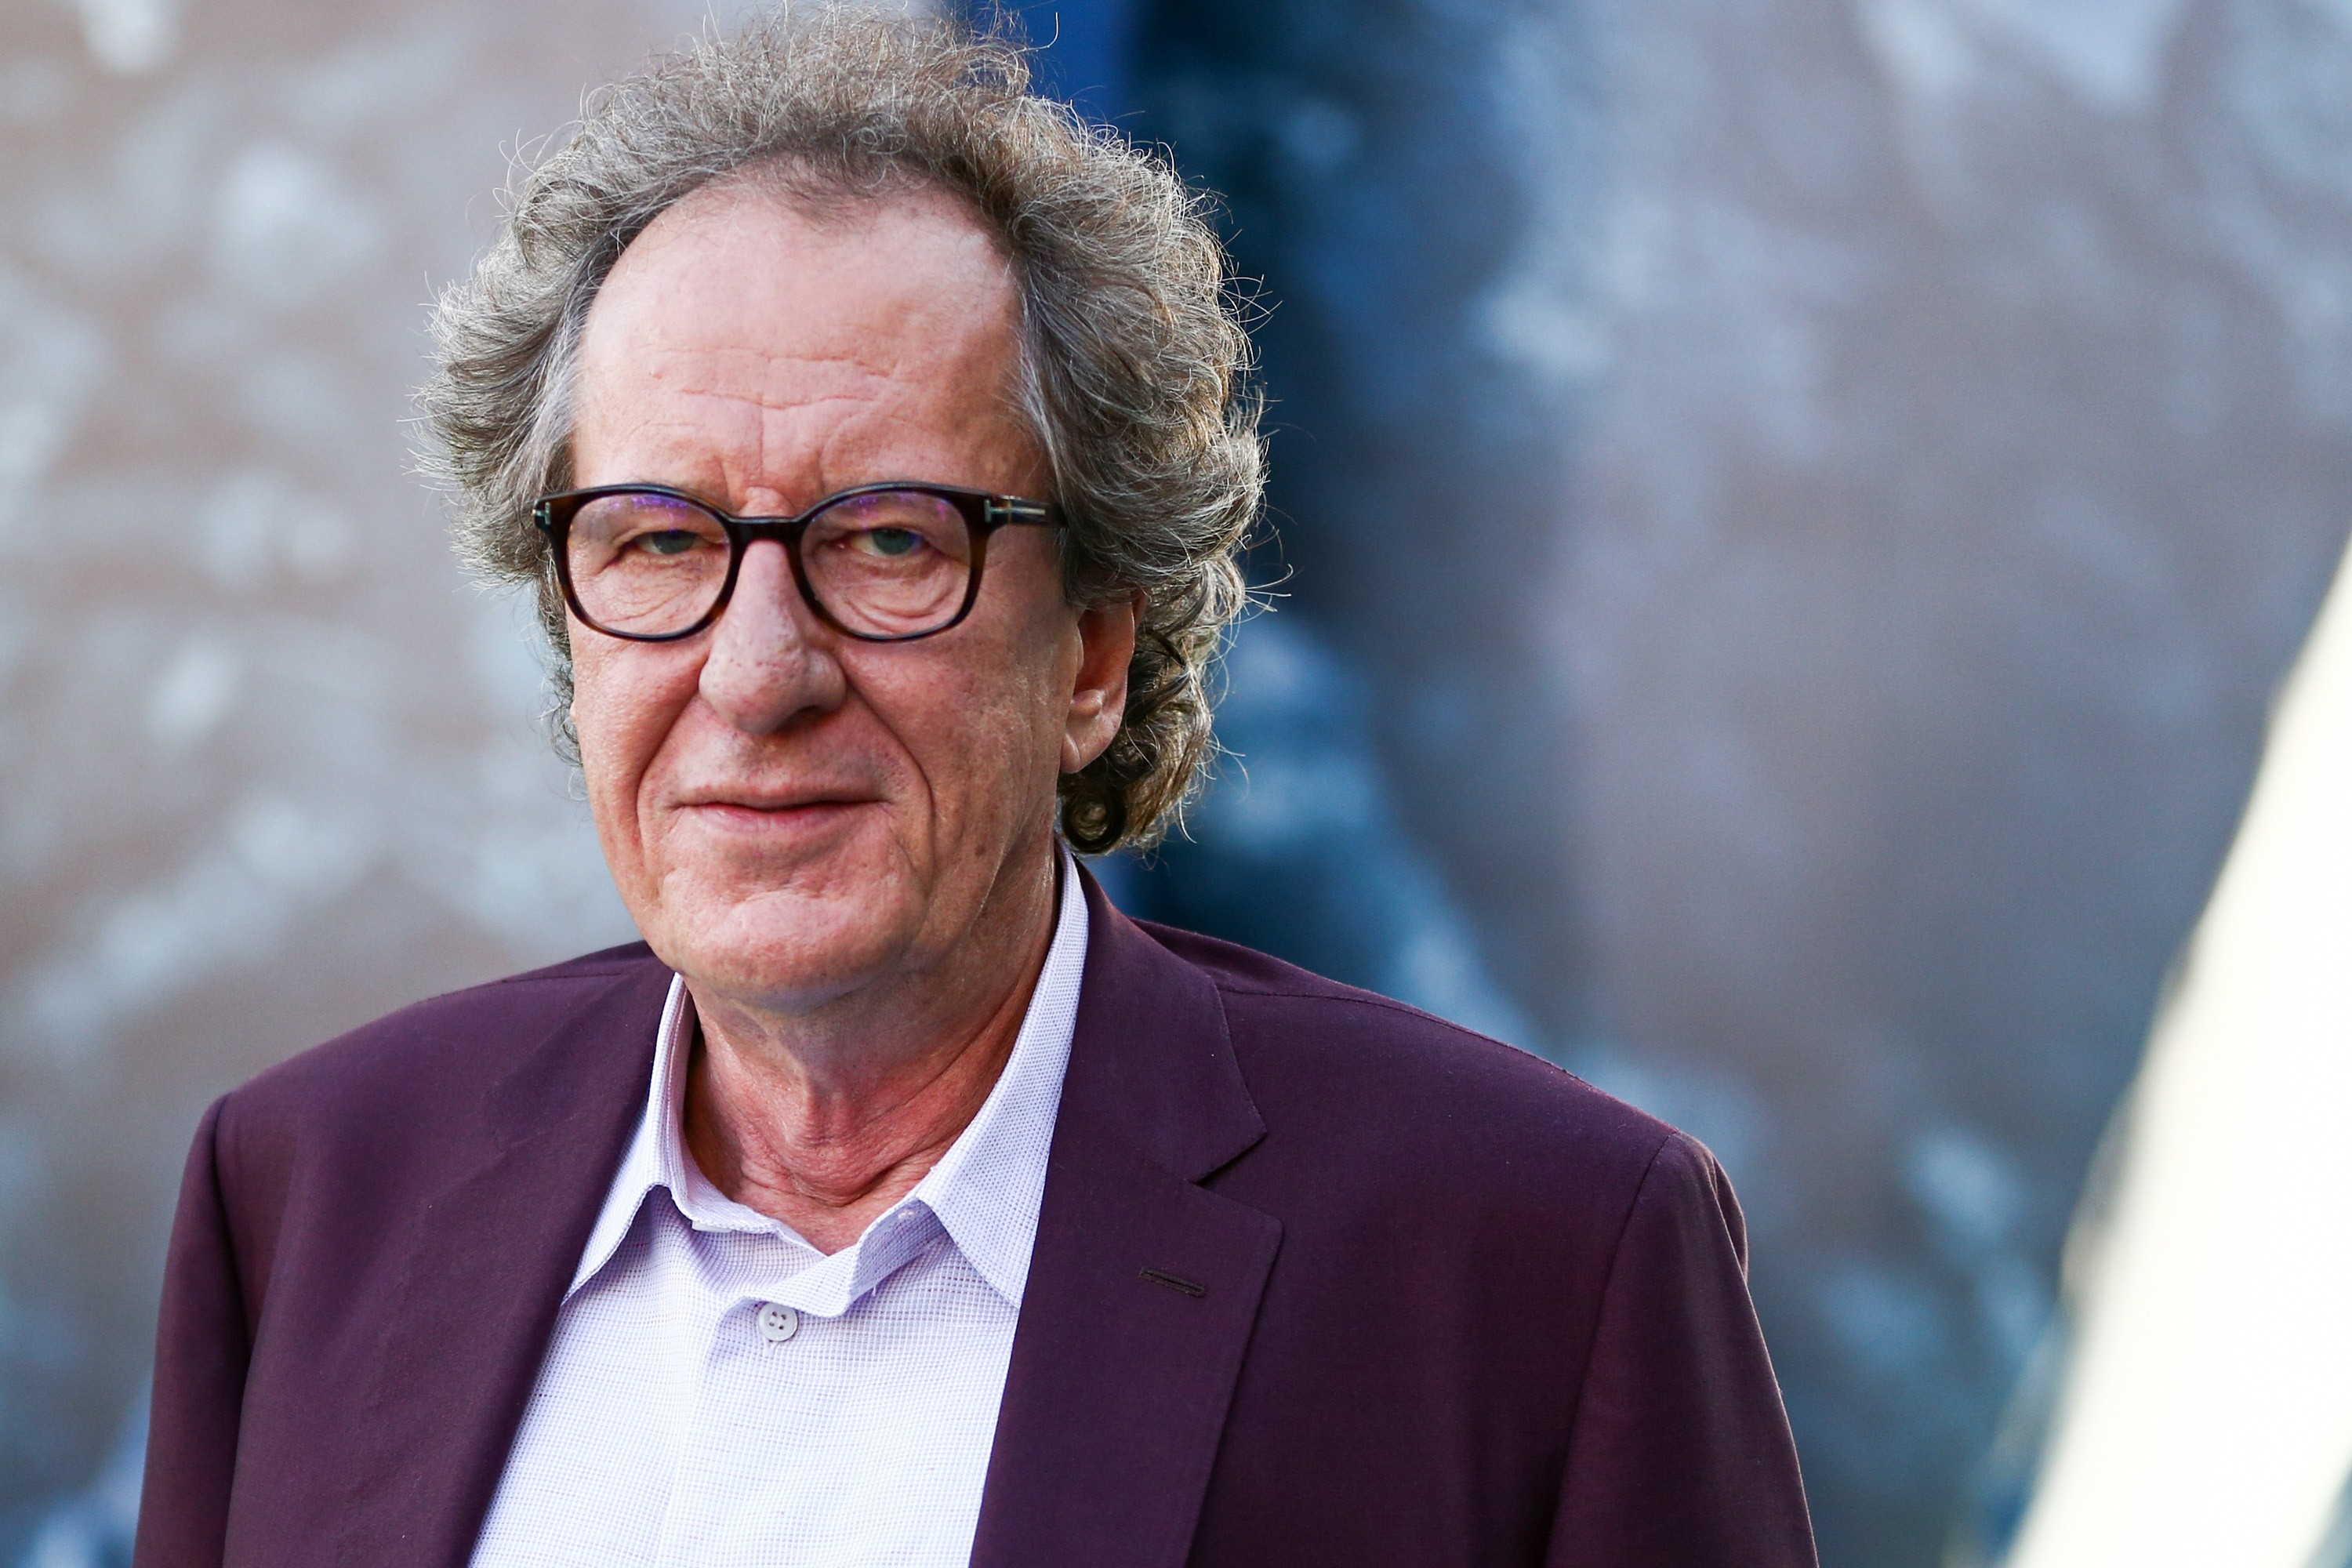 O ator Geoffrey Rush (Foto: Getty Images)